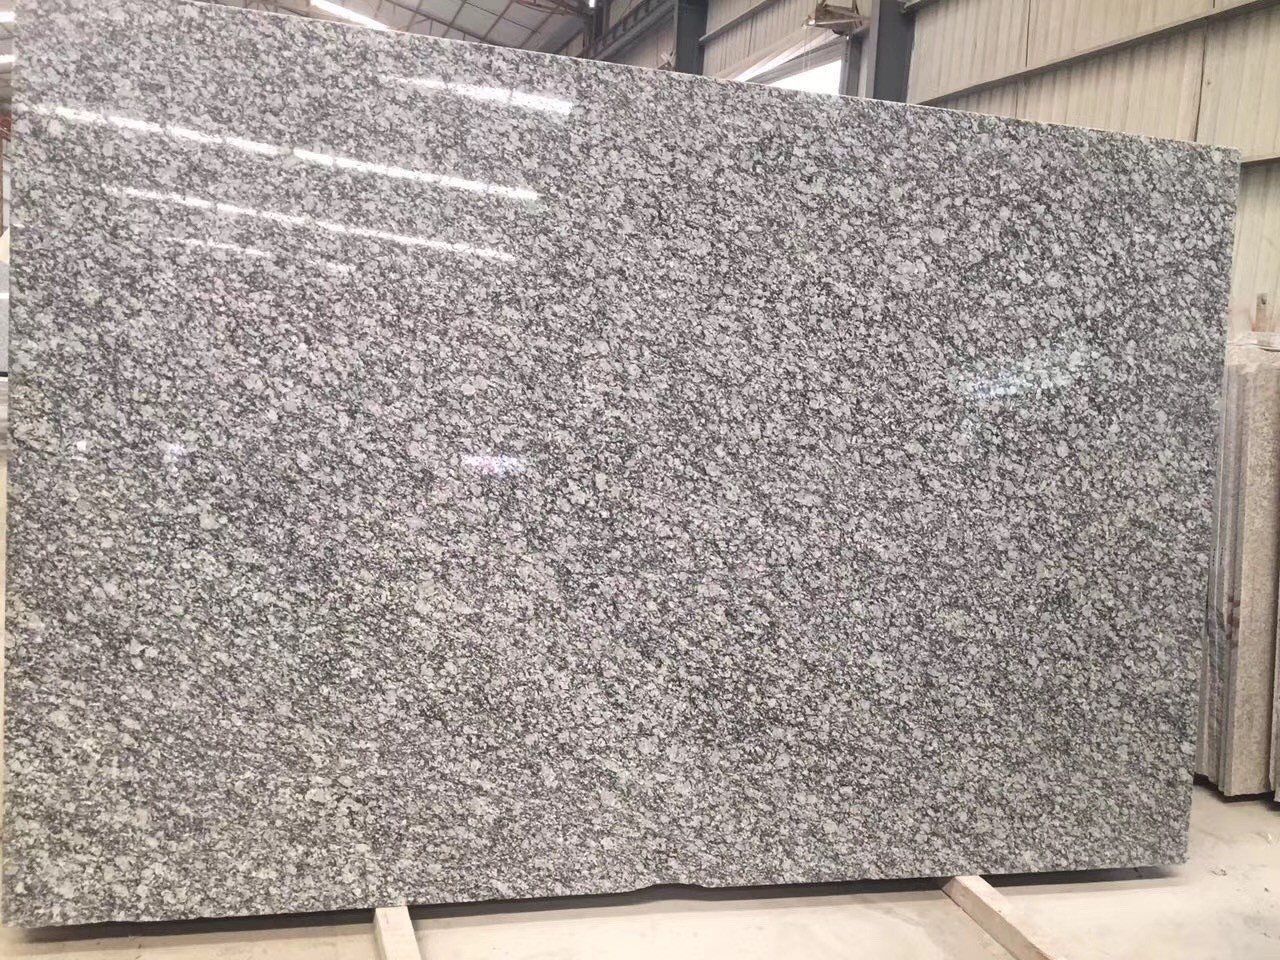 Natural granite,different types of granite,characteristics of granite,what is the texture of granite,volcano granite,granite slab colors,buy granite slab